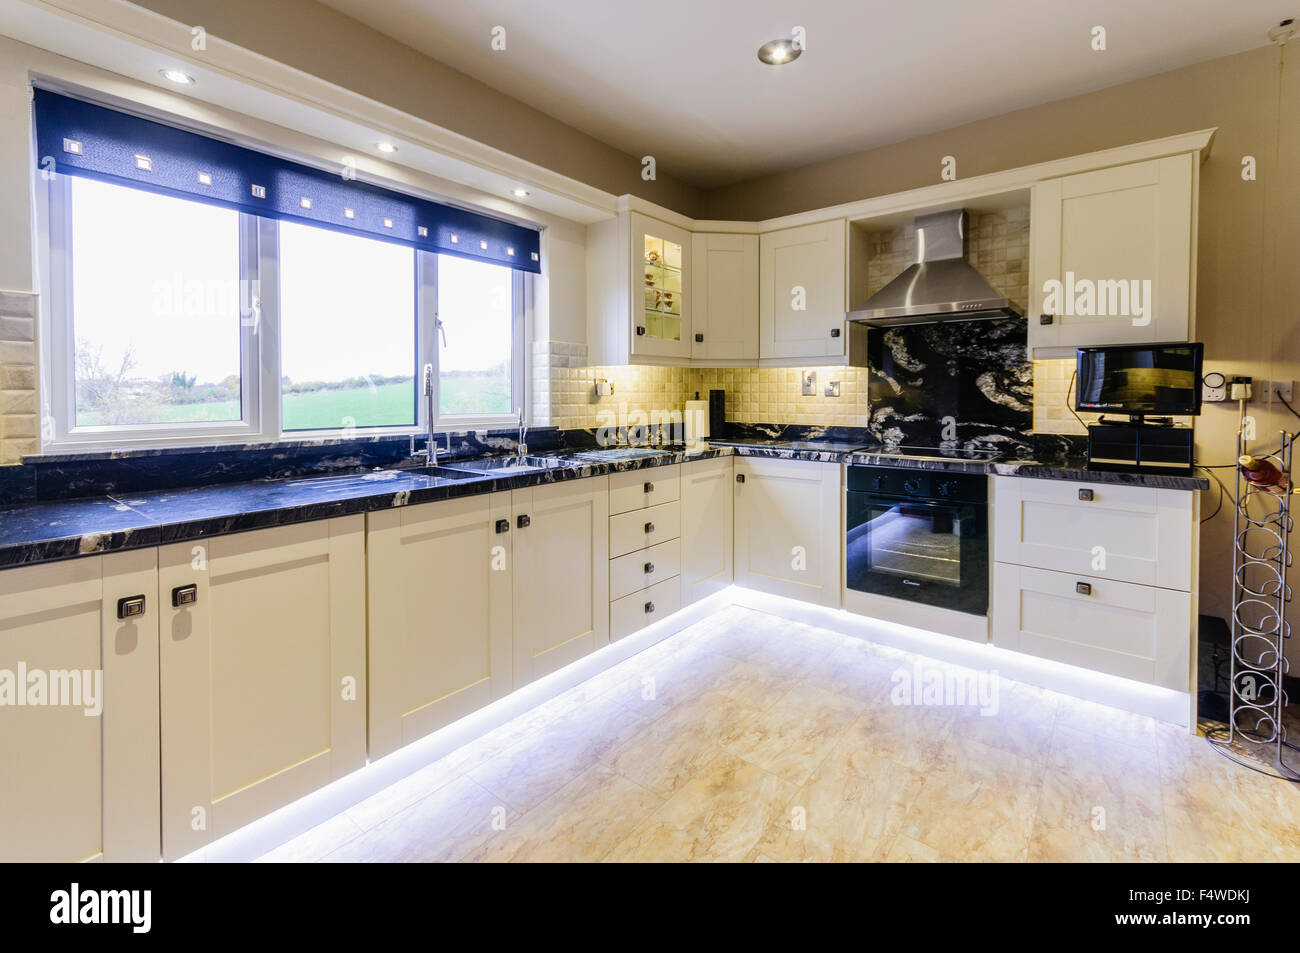 kitchen electrics aid gas cooktop stock photos images alamy modern with white units and under unit lighting image